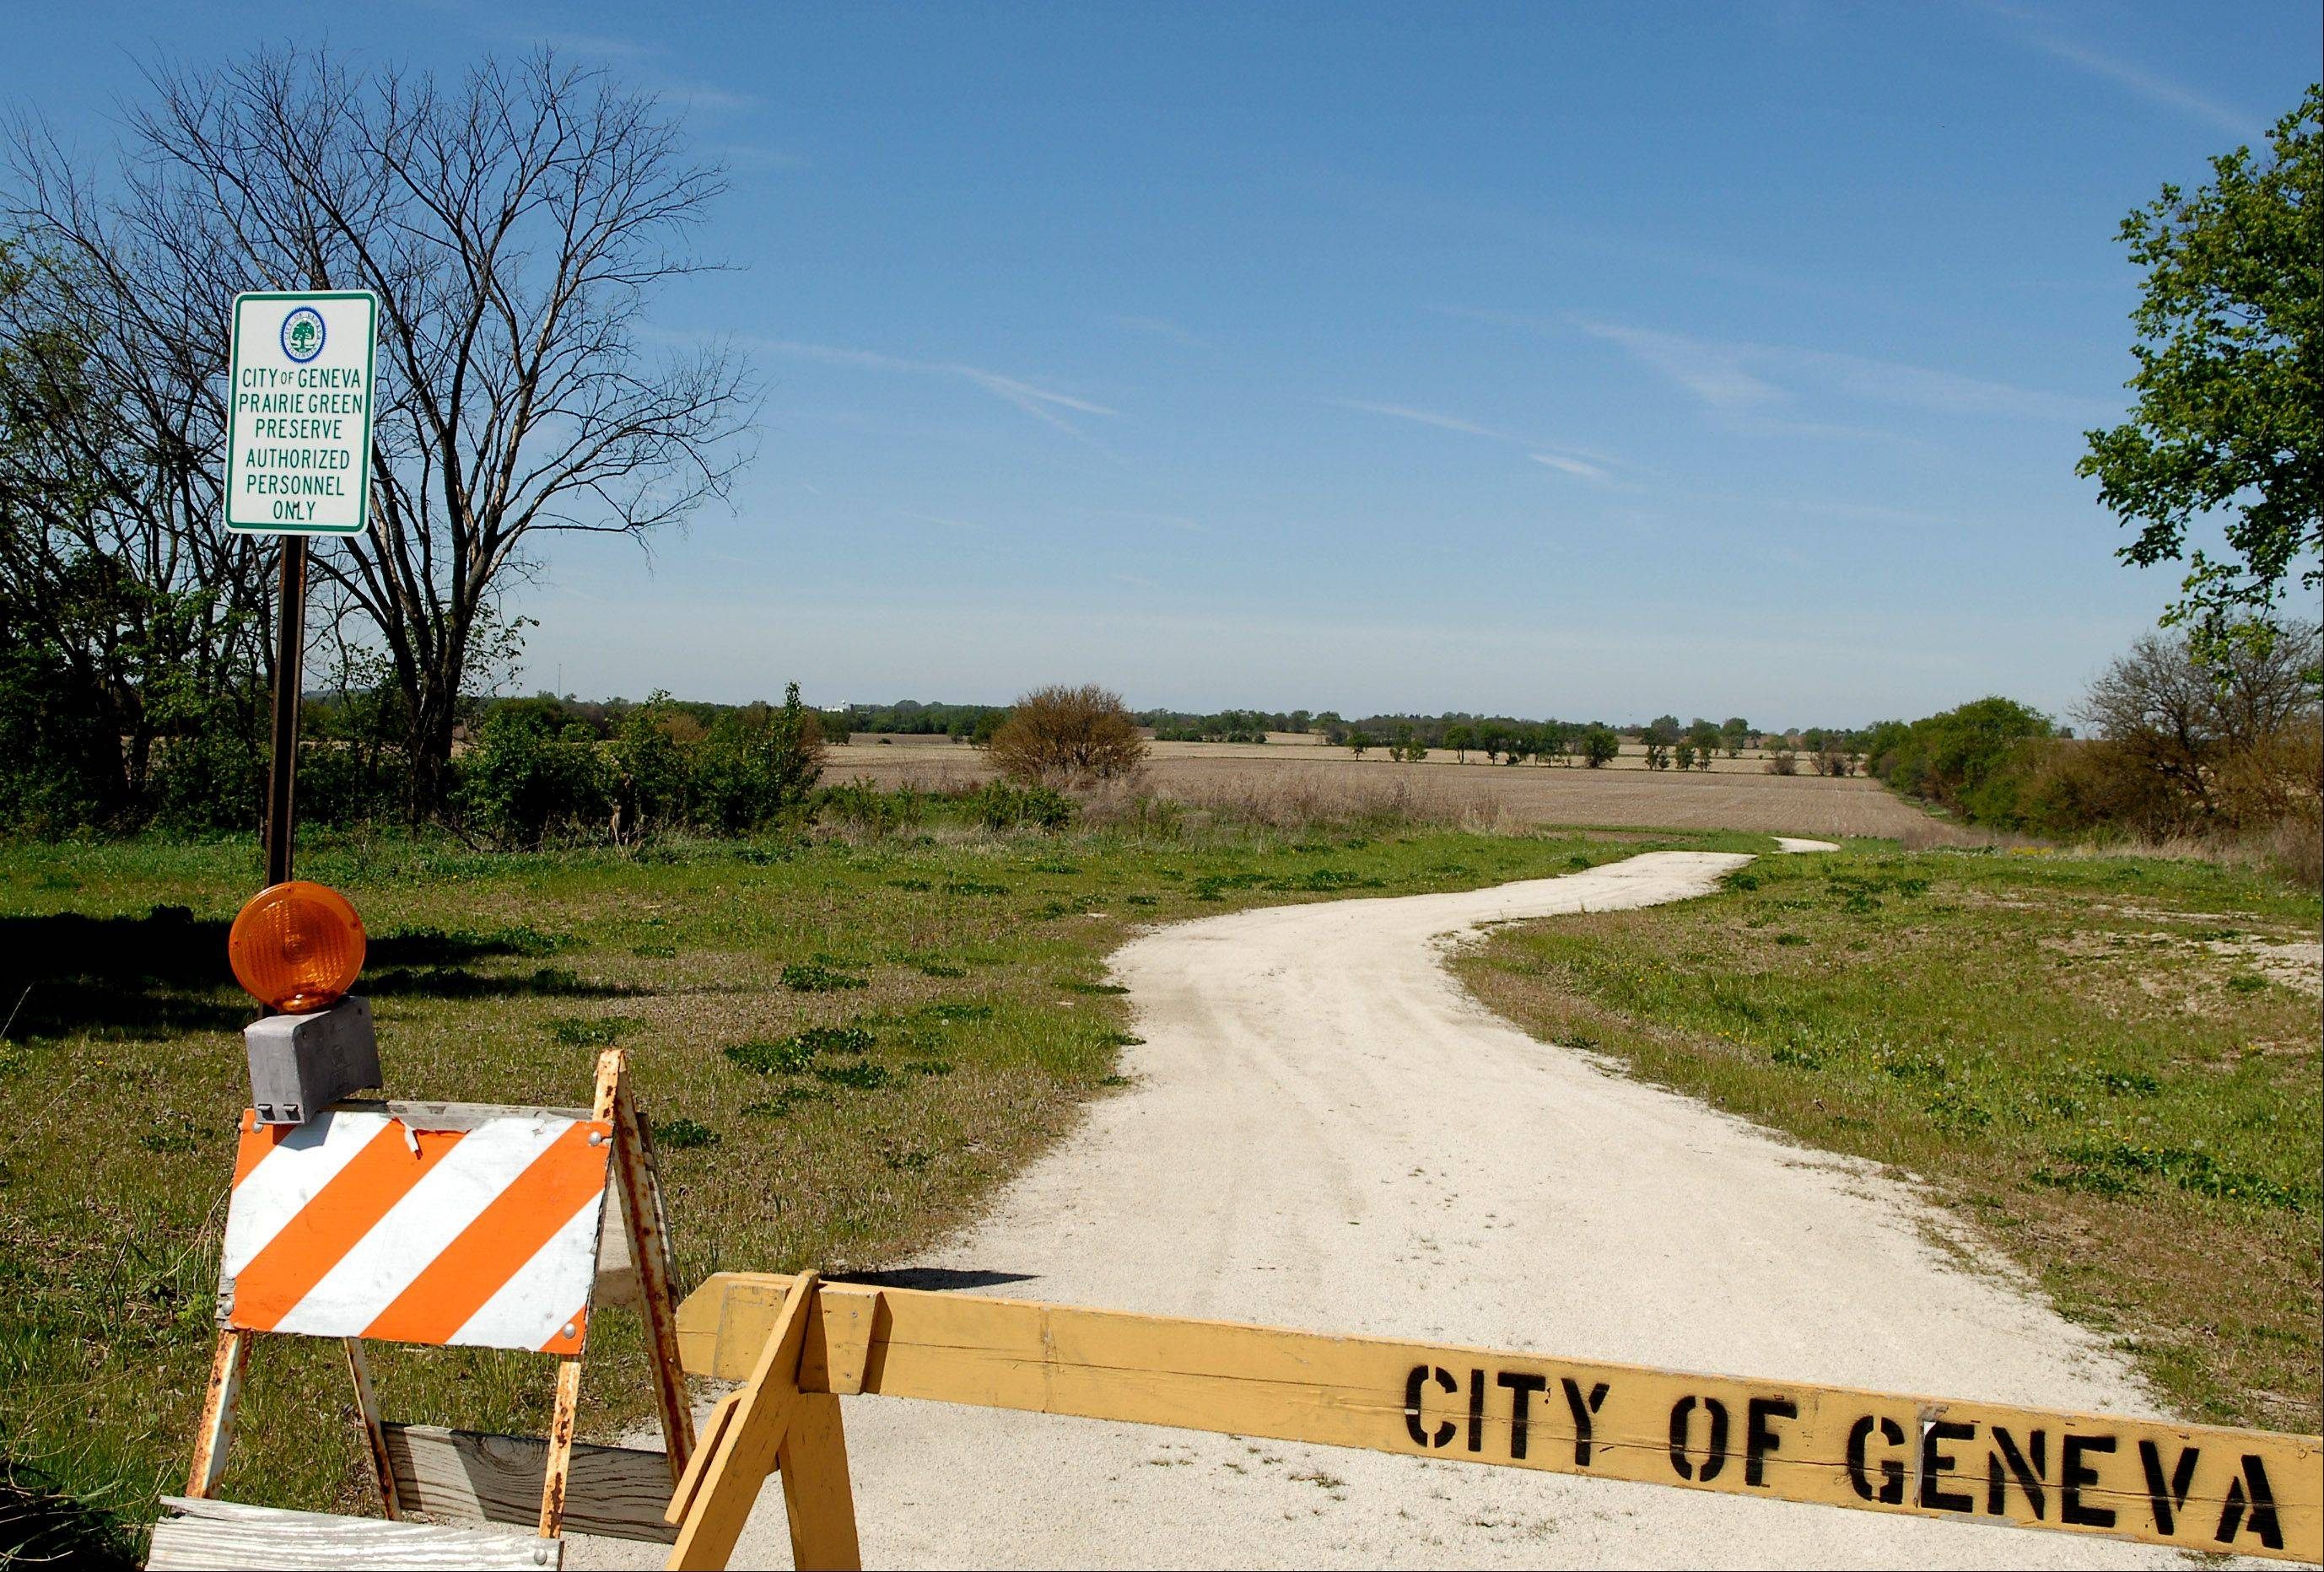 Prairie Green Preserve in Geneva is being transformed into a community garden, with spaces available for rent. The Geneva Community Gardens at Prairie Green will officially open April 21.